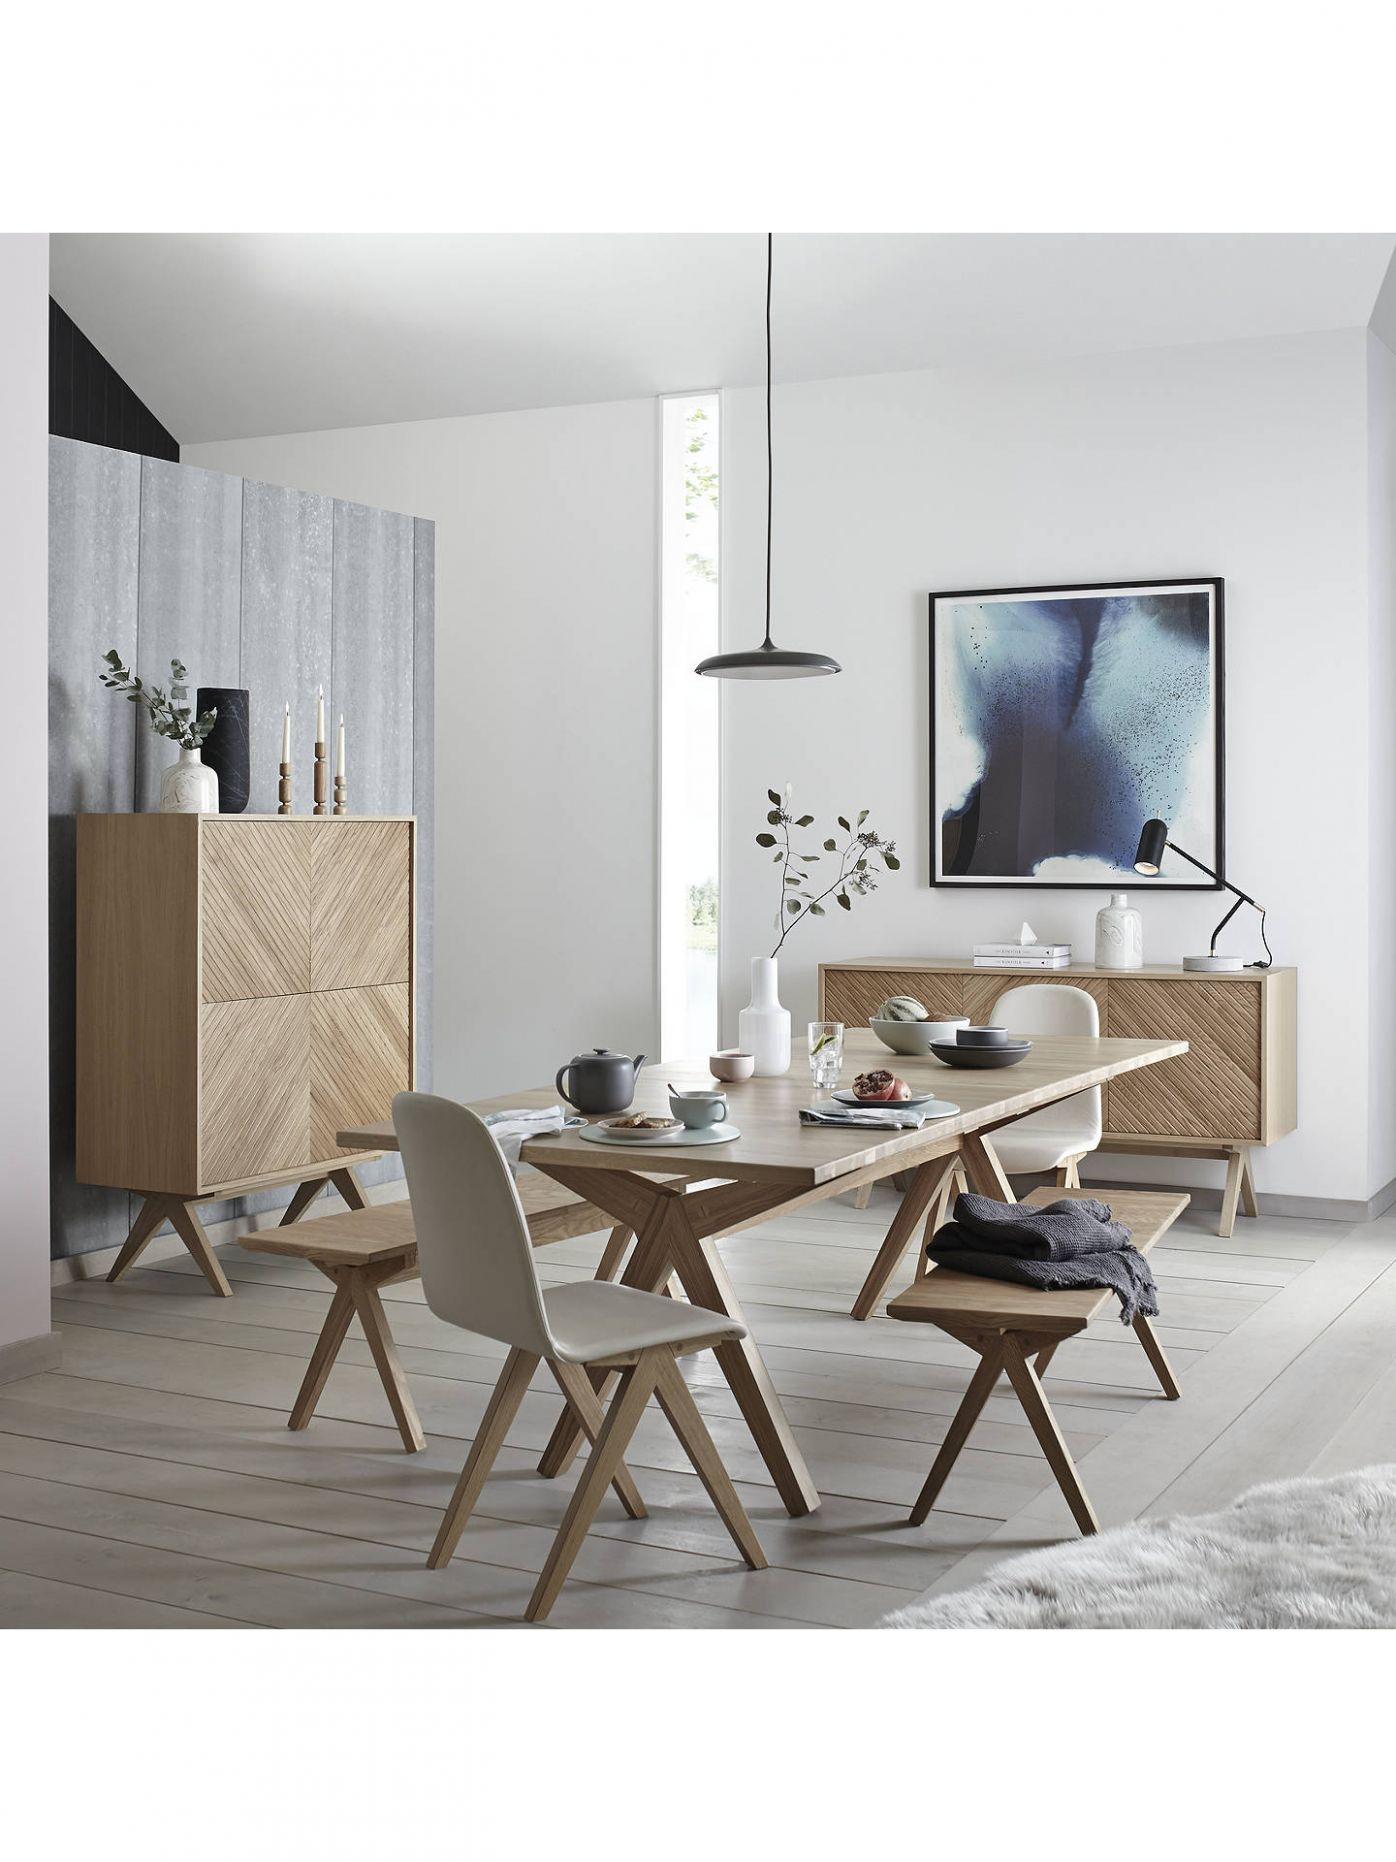 Bethan Gray for John Lewis & Partners Newman Small Dining Bench - john lewis dining room ideas